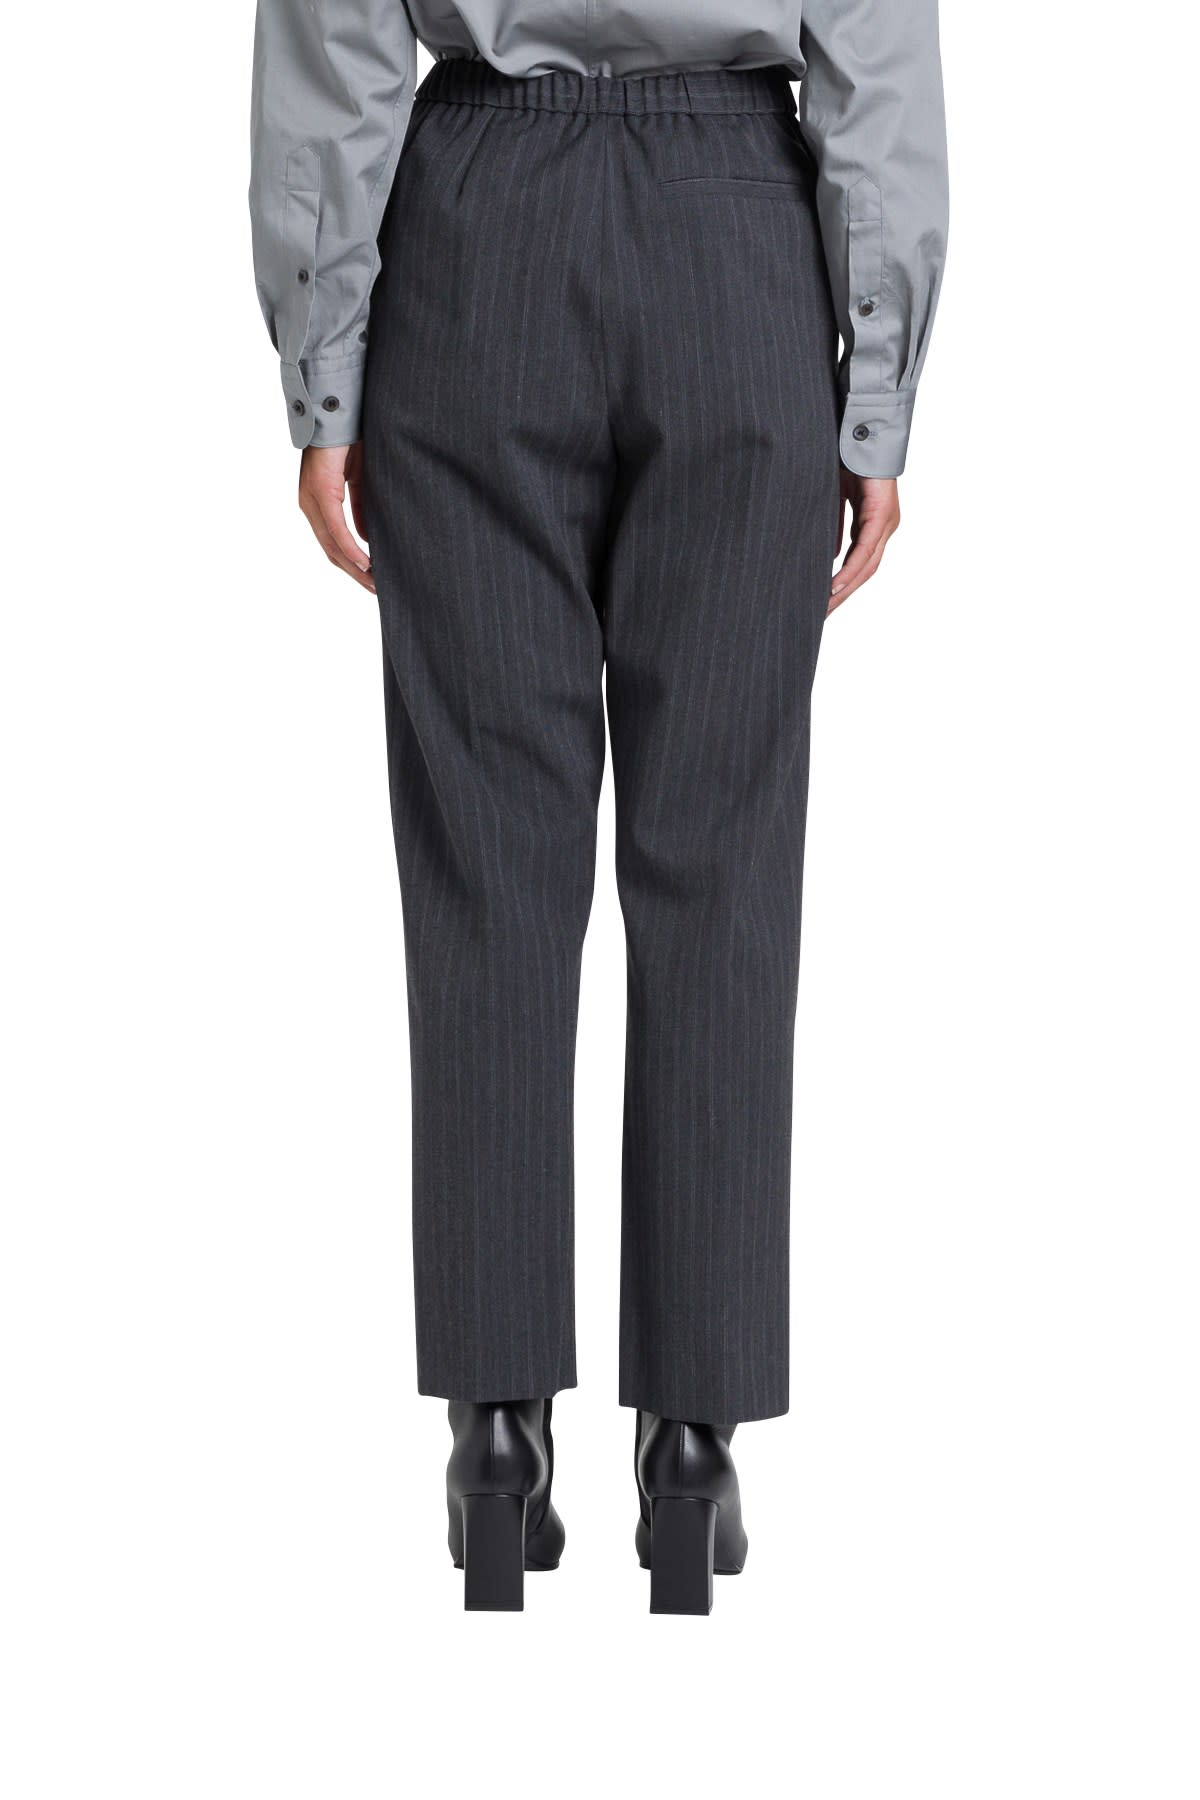 Dries Van Noten PINSTRIPED TRPOUSERS WITH ELASTIC WAIST